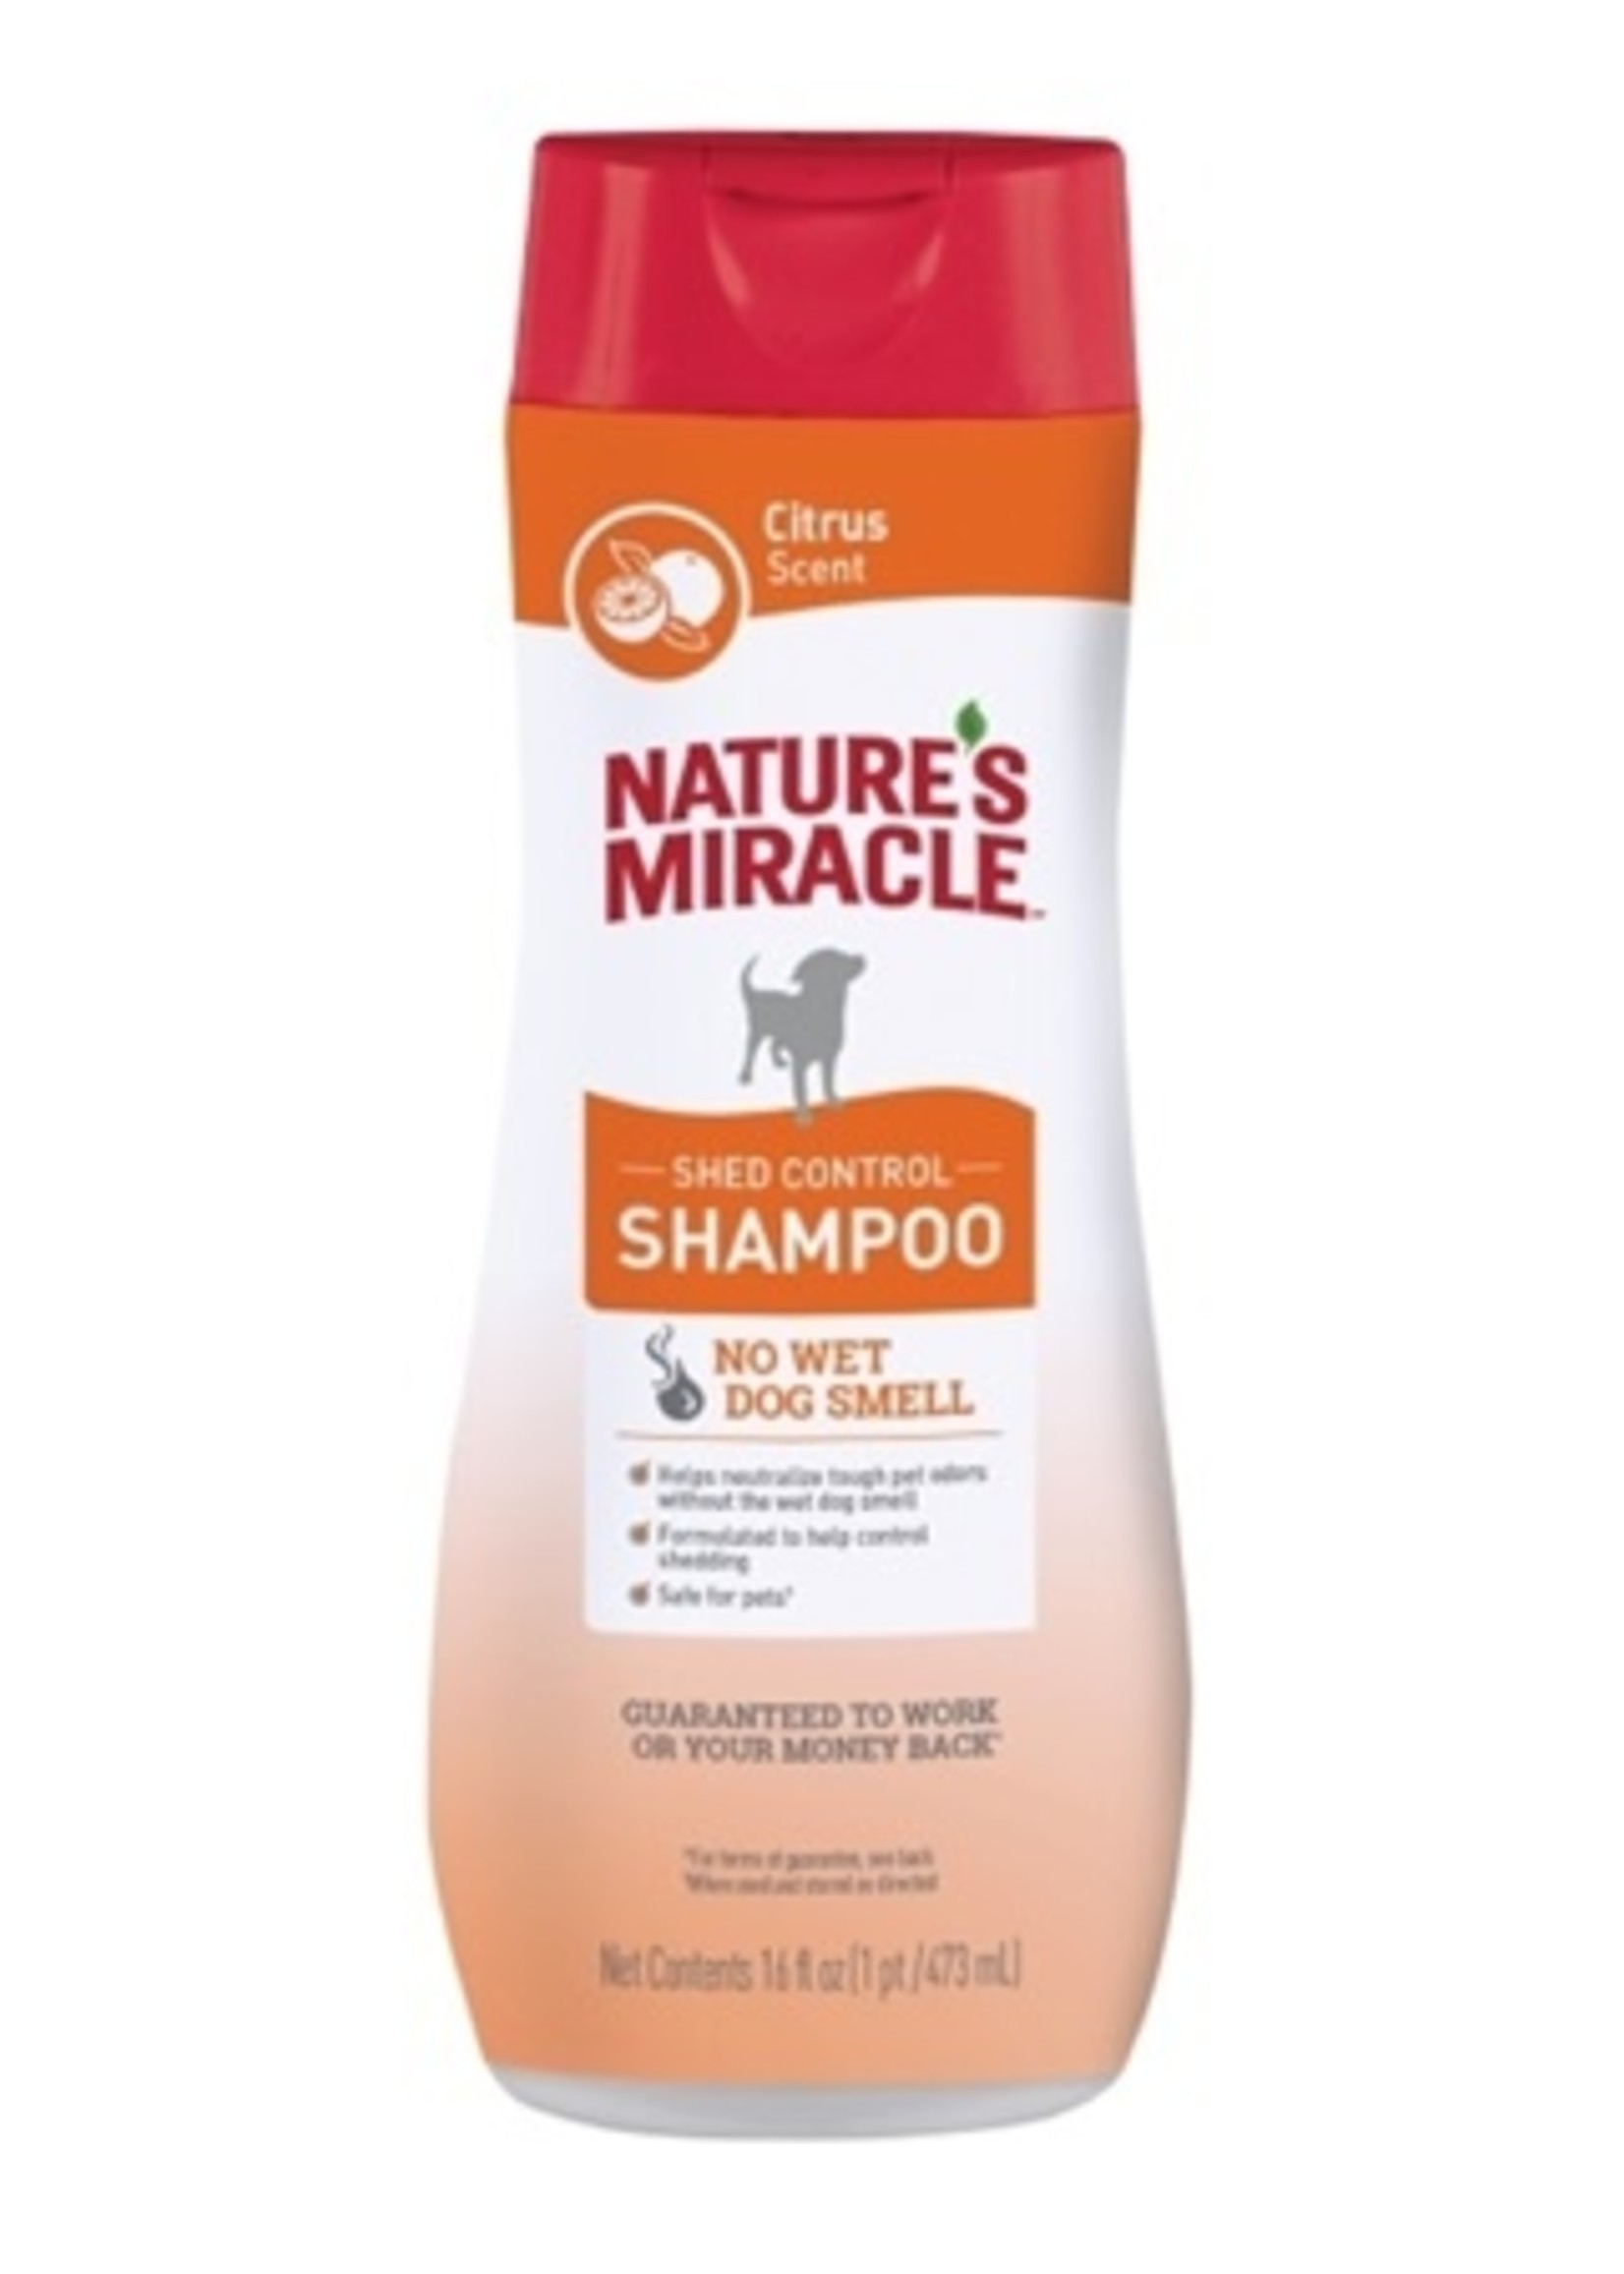 Nature's Miracle Miracle Shampoo, 16 oz Citrus Scent